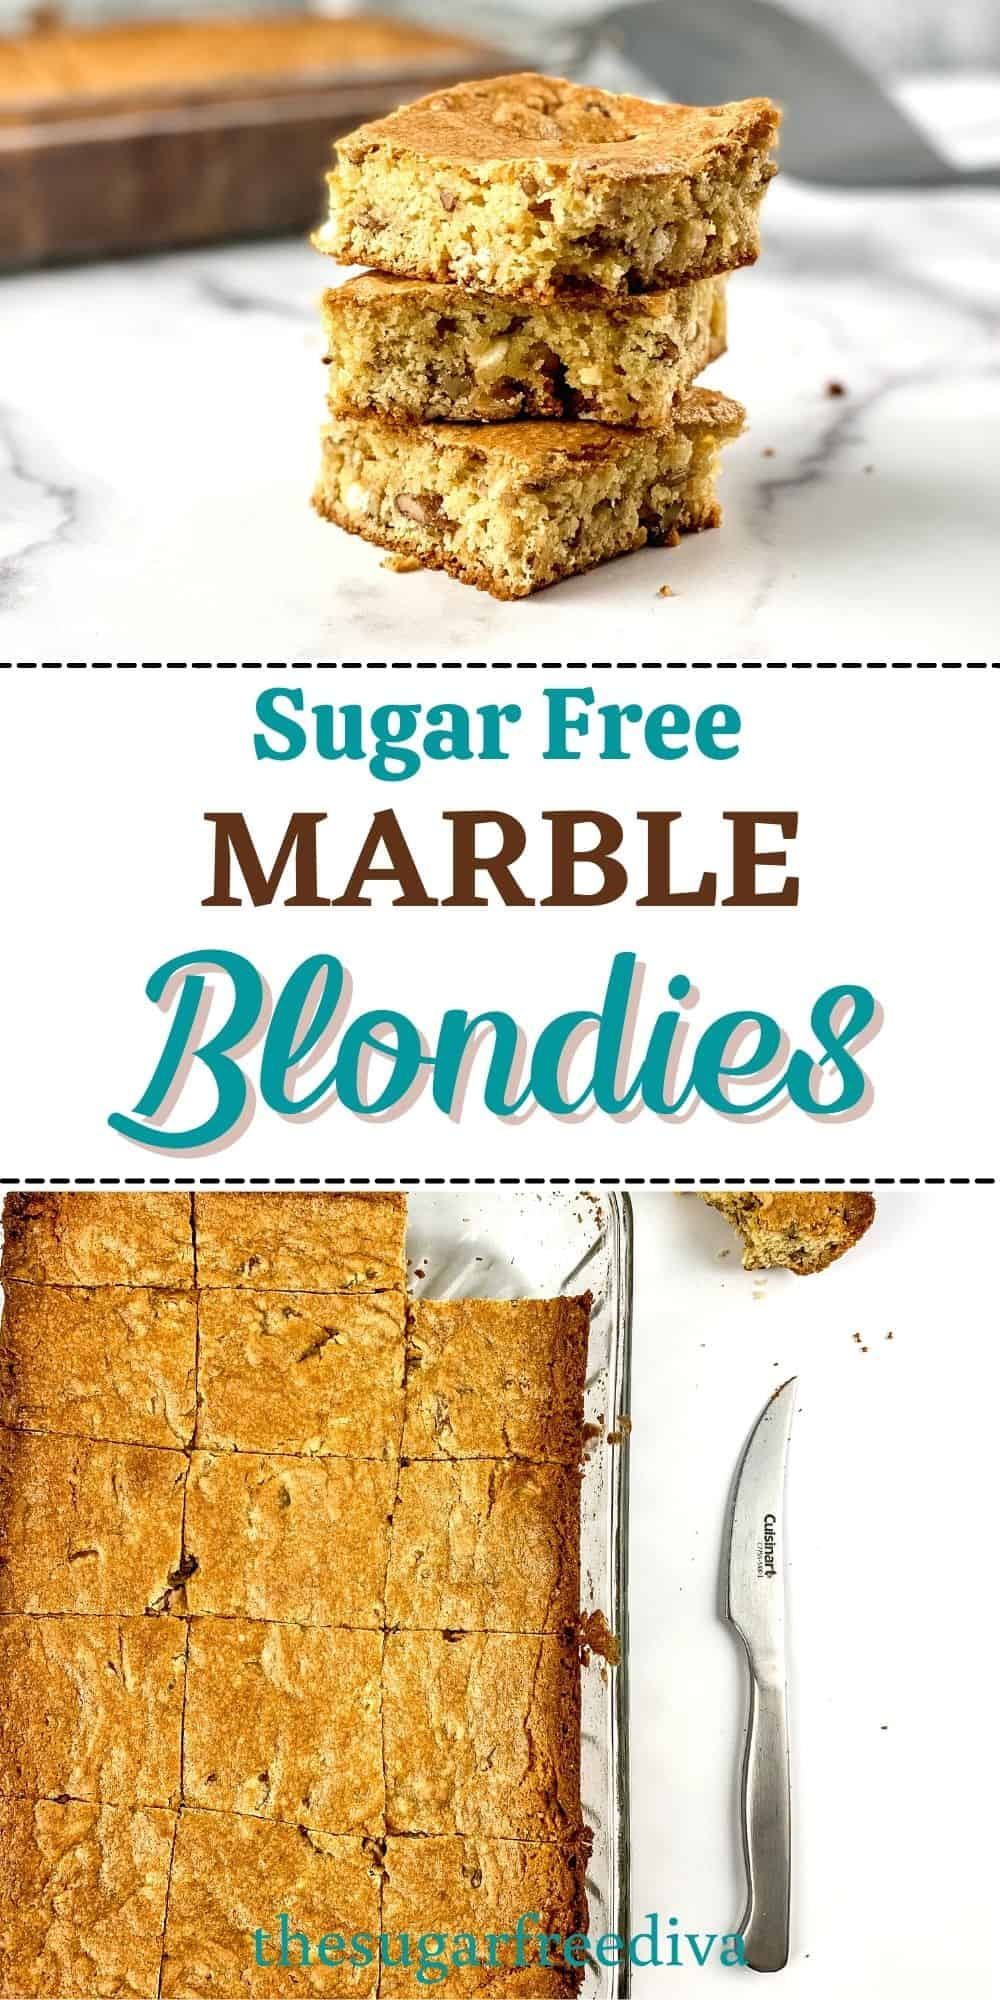 Sugar Free Marble Blondies